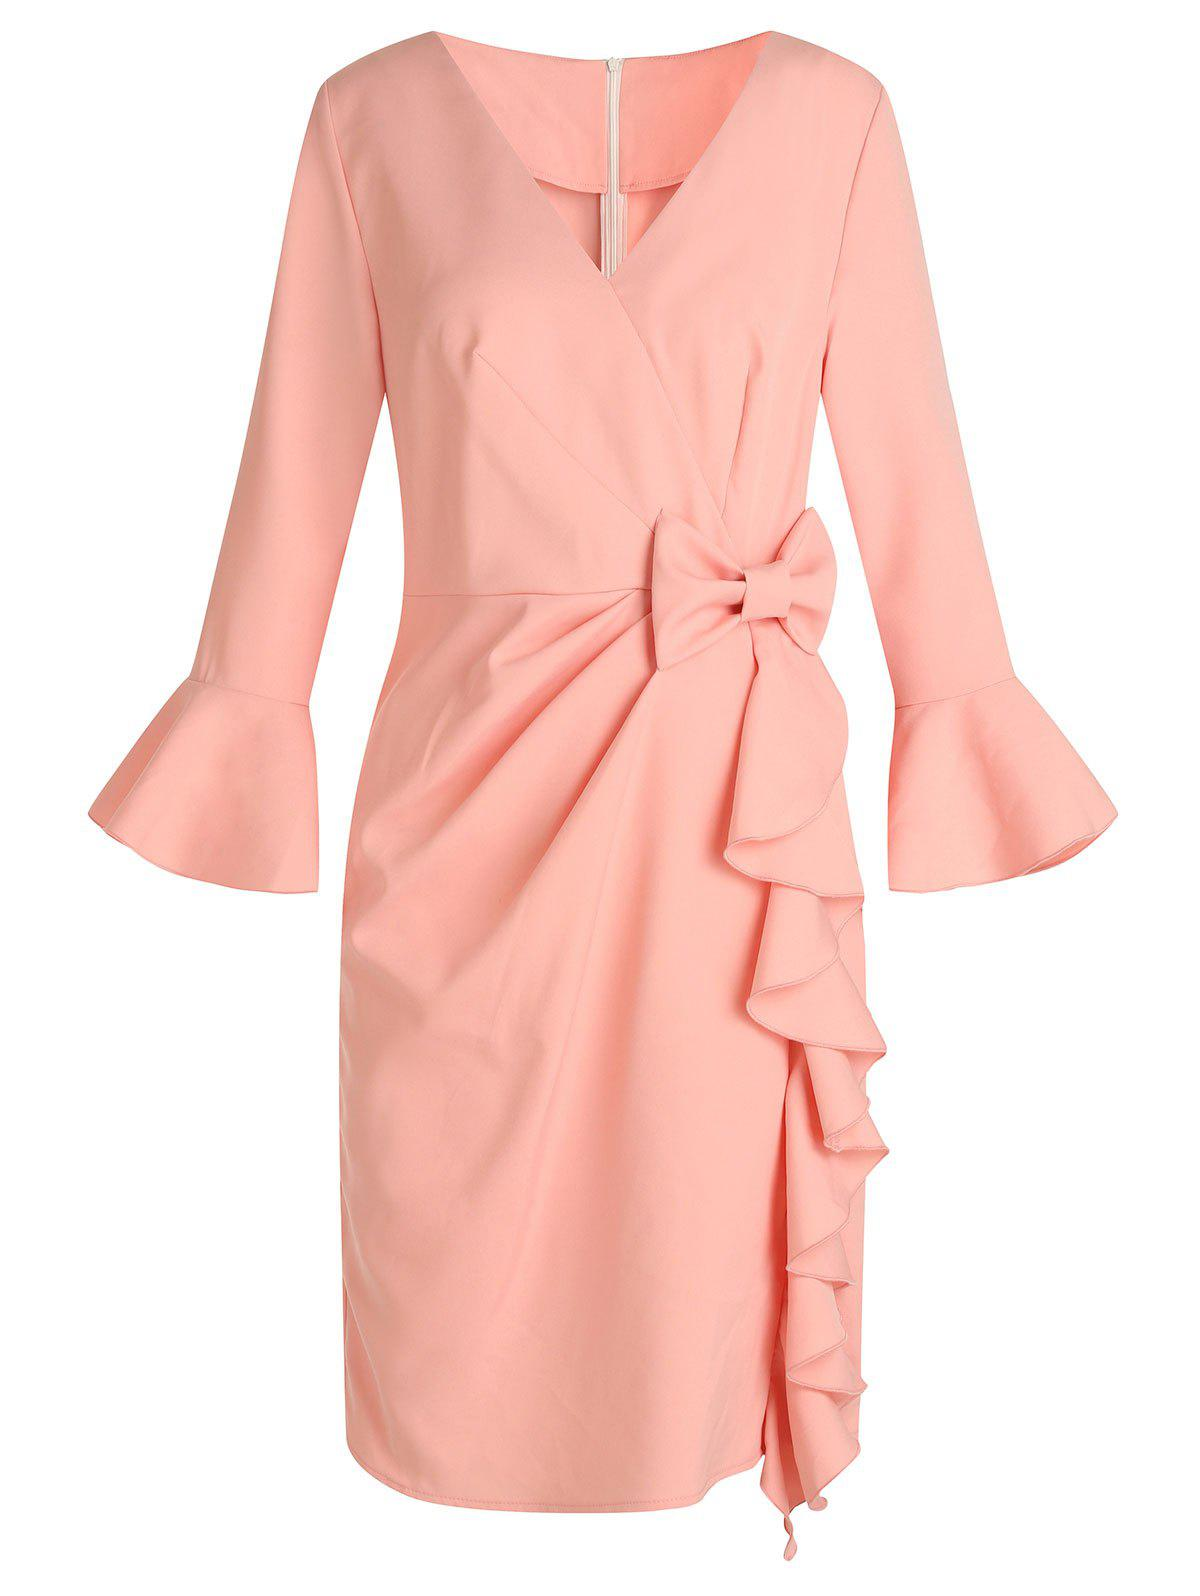 Hot Flare Sleeve Bowknot Ruffle Dress